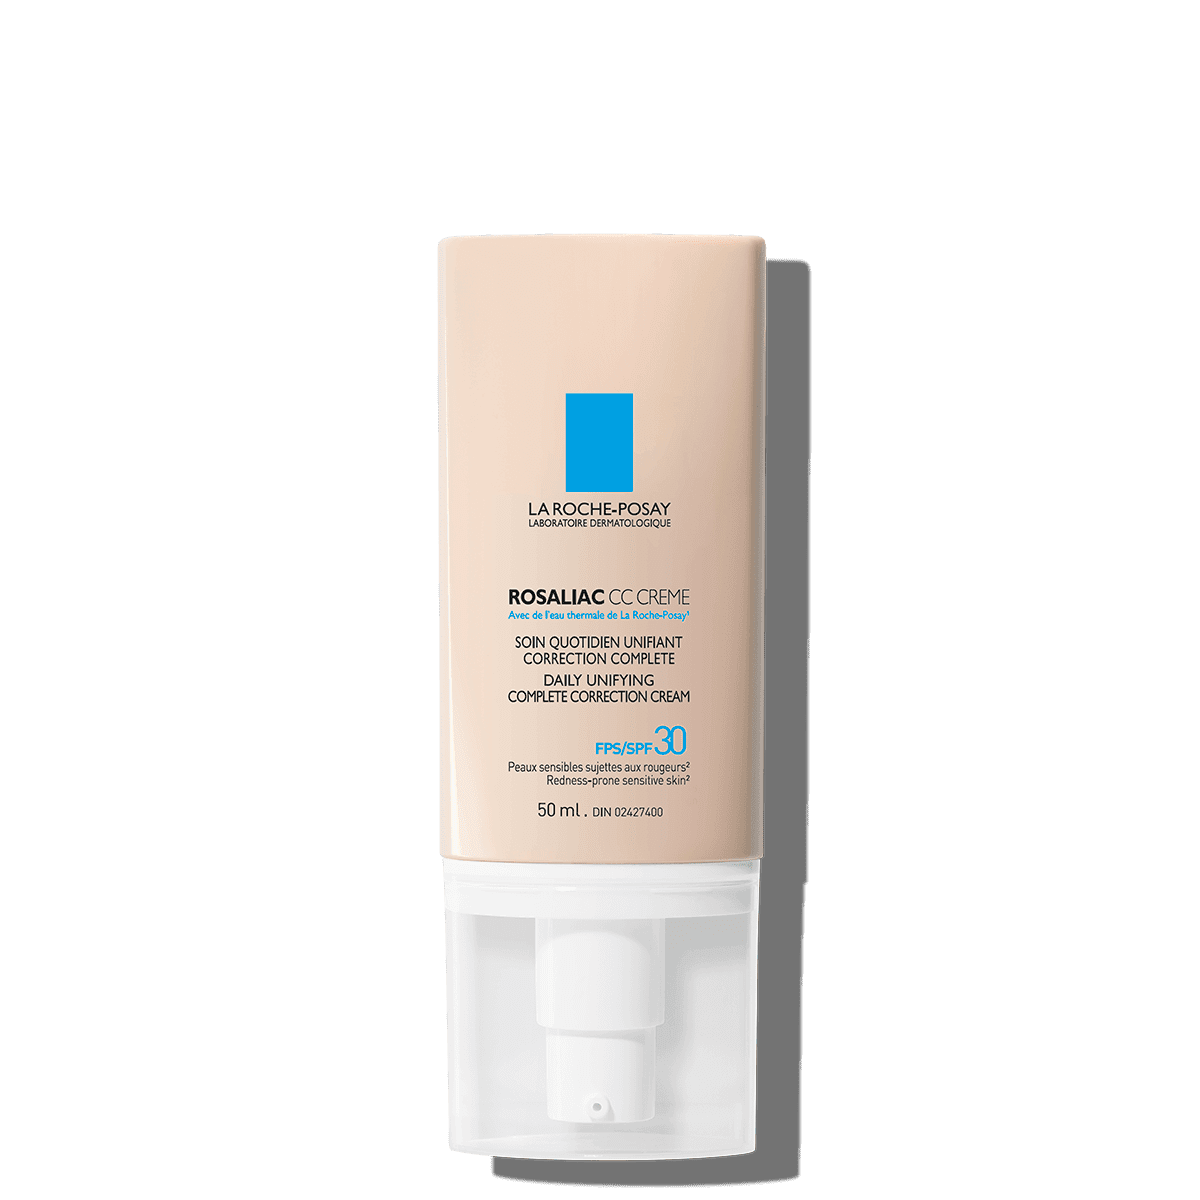 La Roche Posay ProductPage Face Care Rosaliac CC Cream 50ml 3337872414